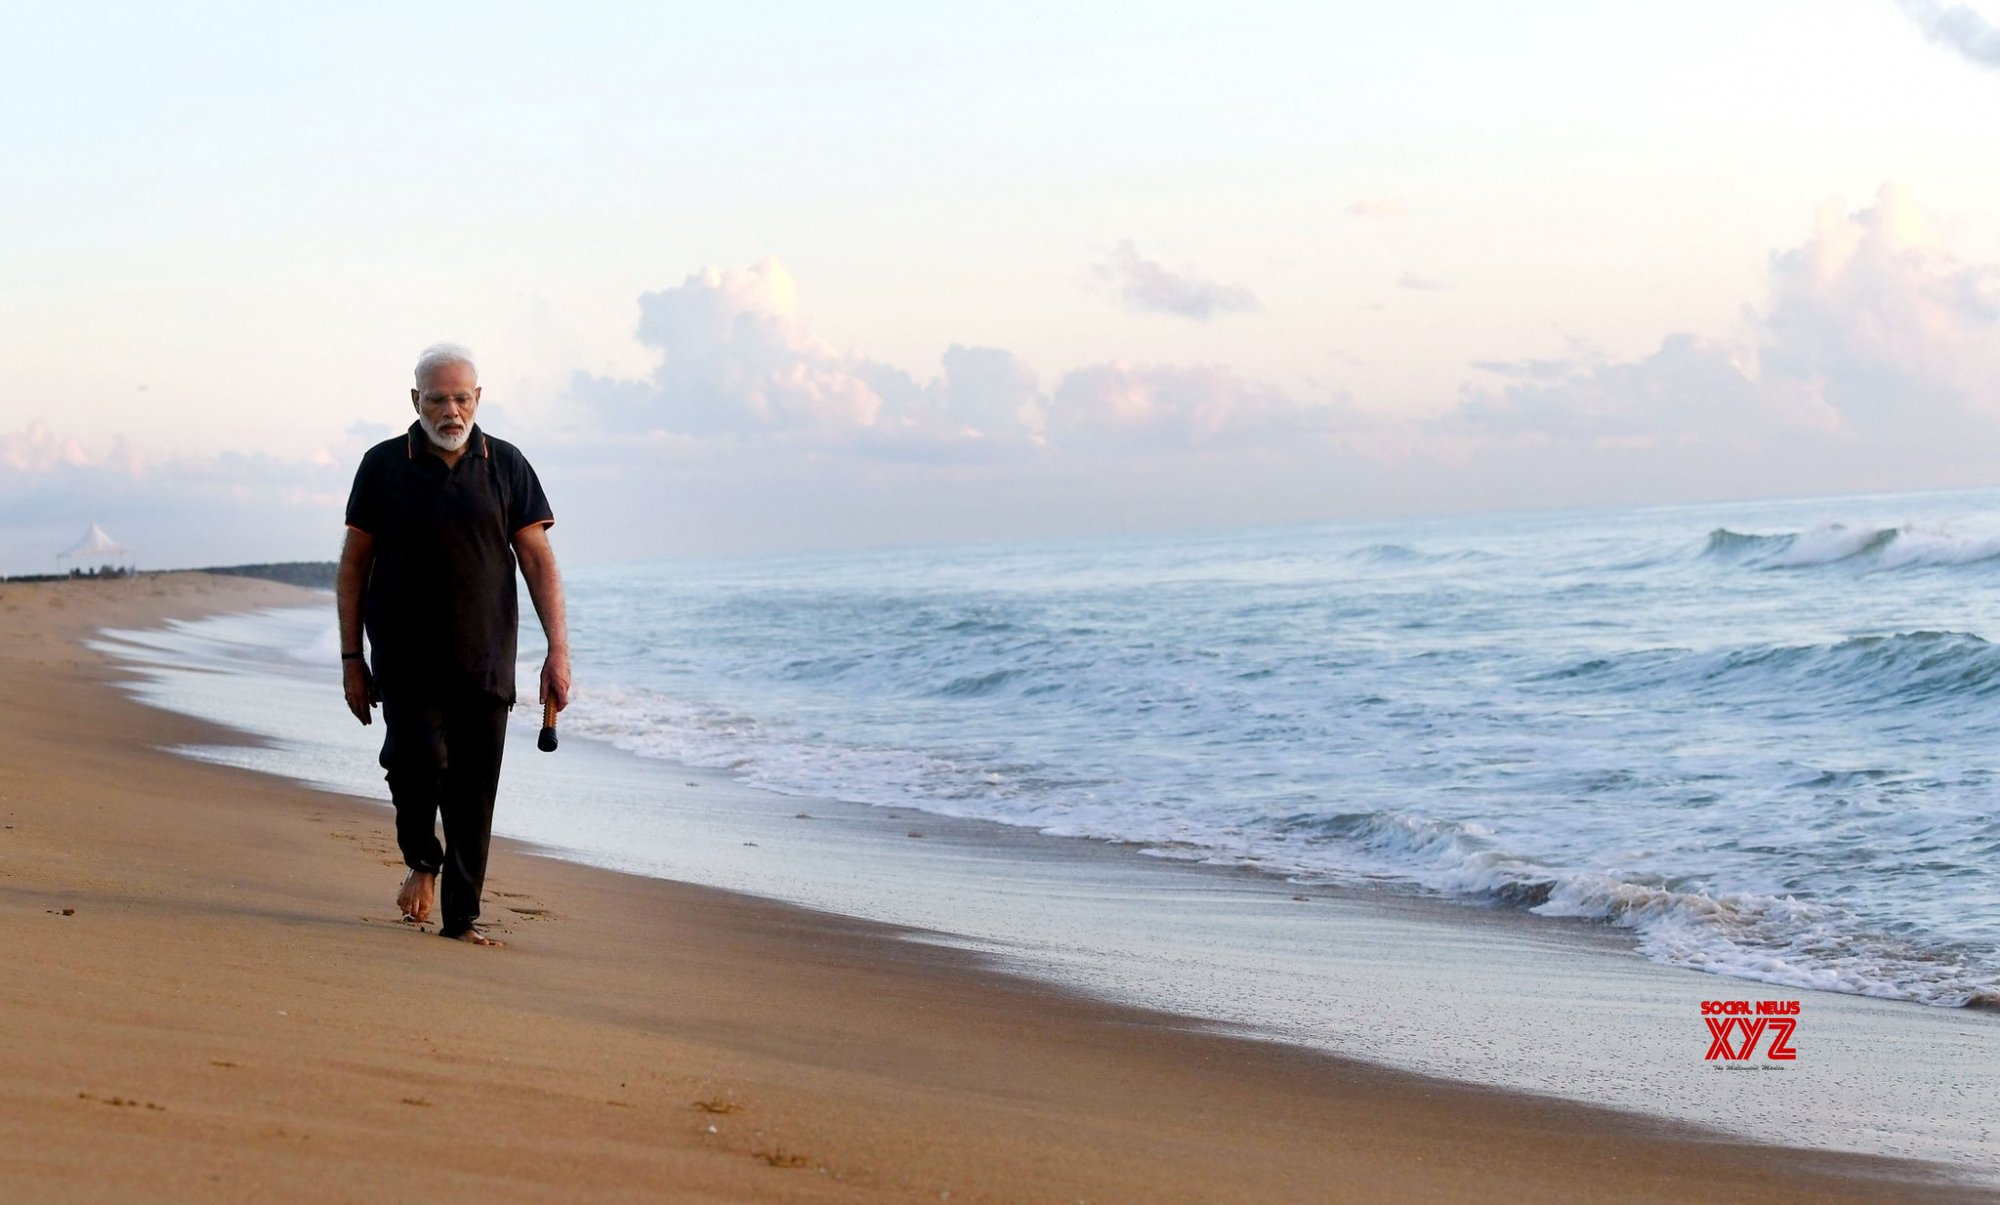 Mahabalipuram: PM Modi's refreshing walk and exercise in Mahabalipuram #Gallery